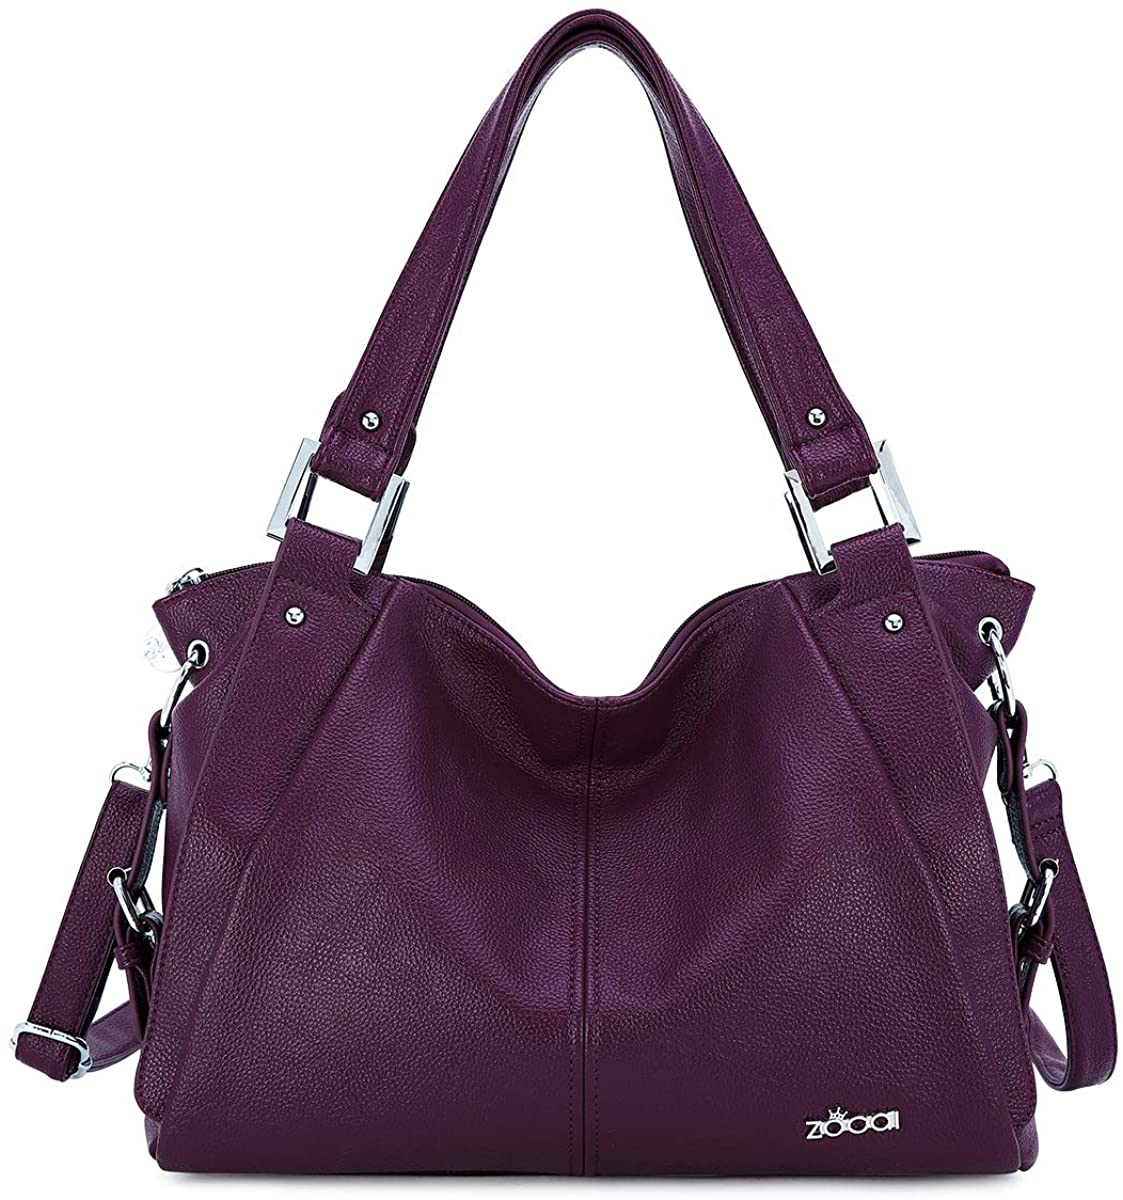 Hobo Shoulder Bag for Women Tote Handbags Purses Street Satchel PU Leather with Multi Pockets Best Gift for Ladies